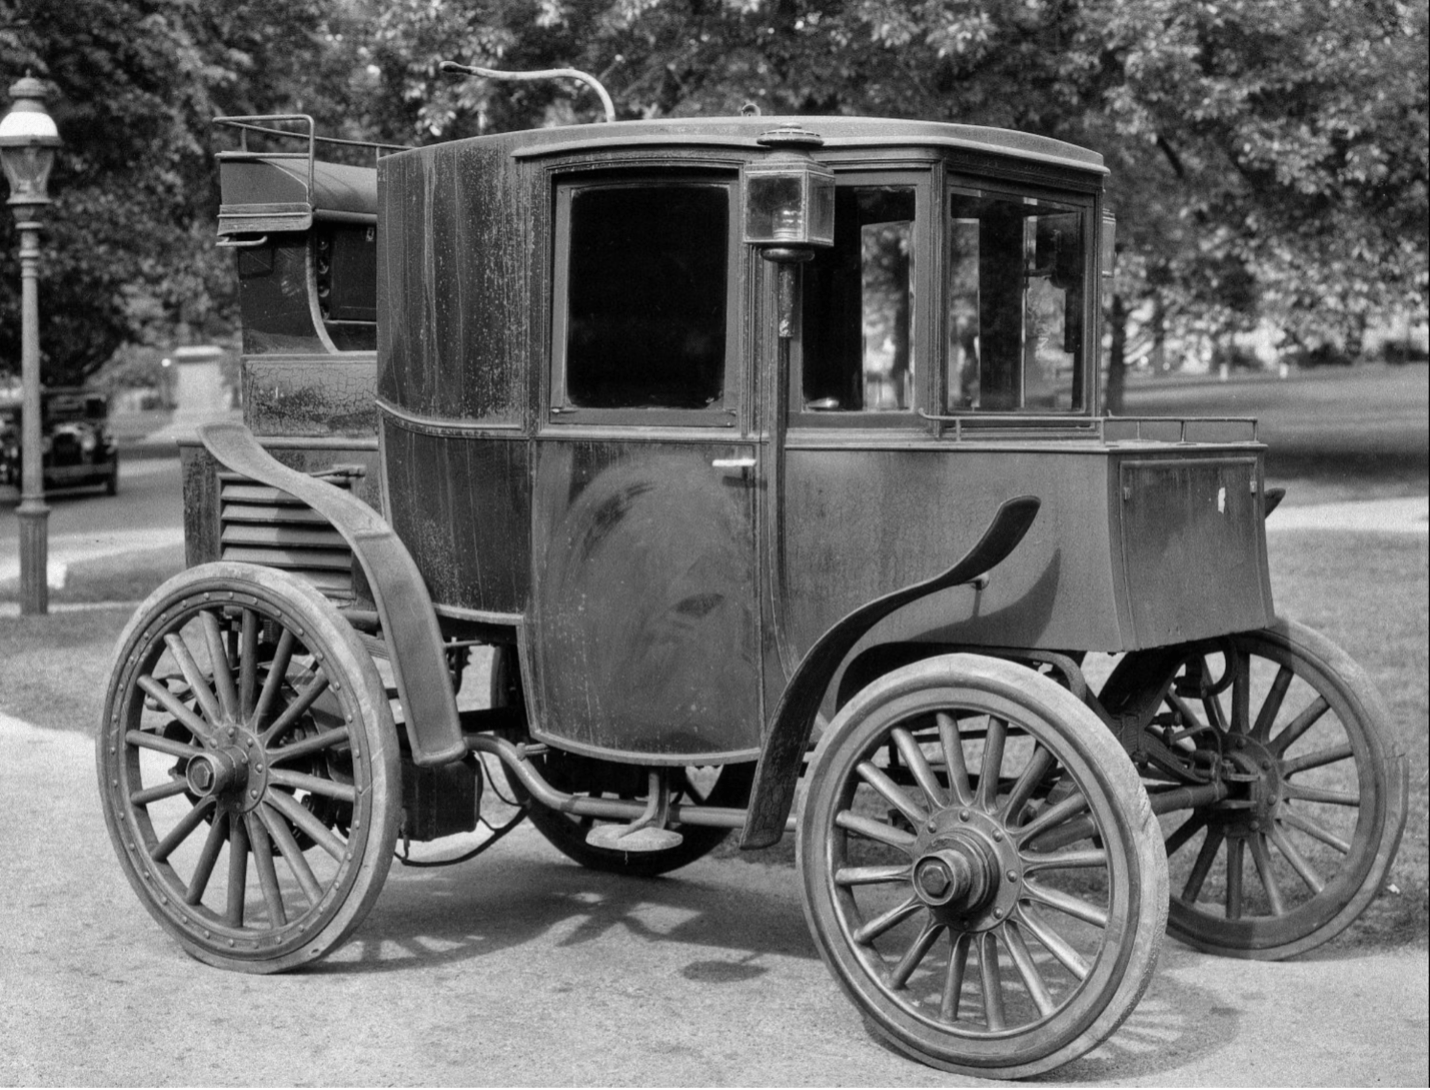 Fig. 1: Better and cheaper batteries might have made a difference. A Riker electric vehicle, circa 1900. Source: Smithsonian/National Museaum of American History